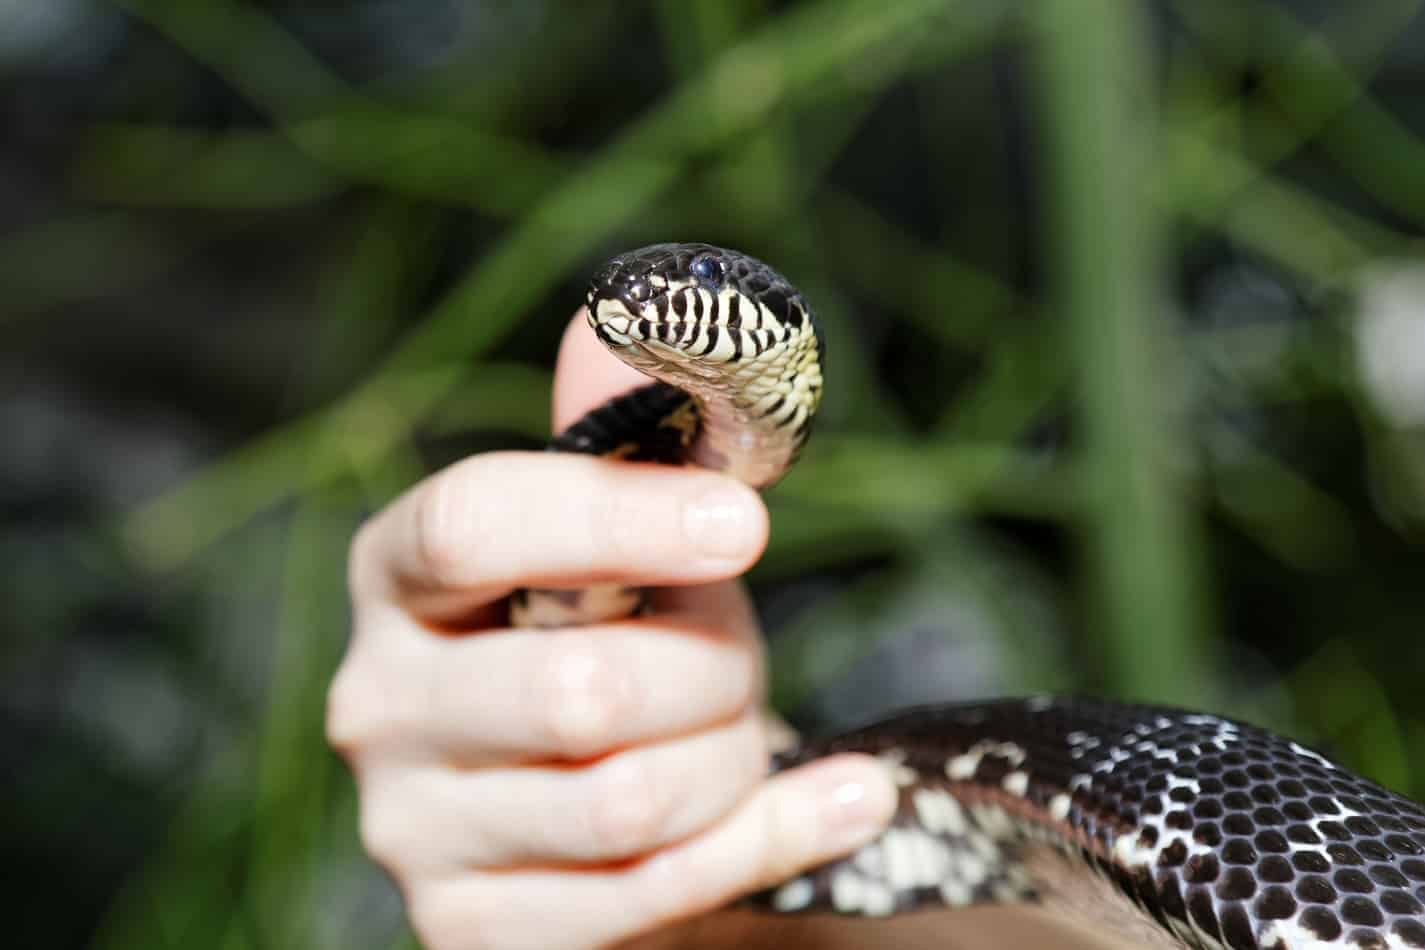 Do Pet Snakes Like to Be Petted?